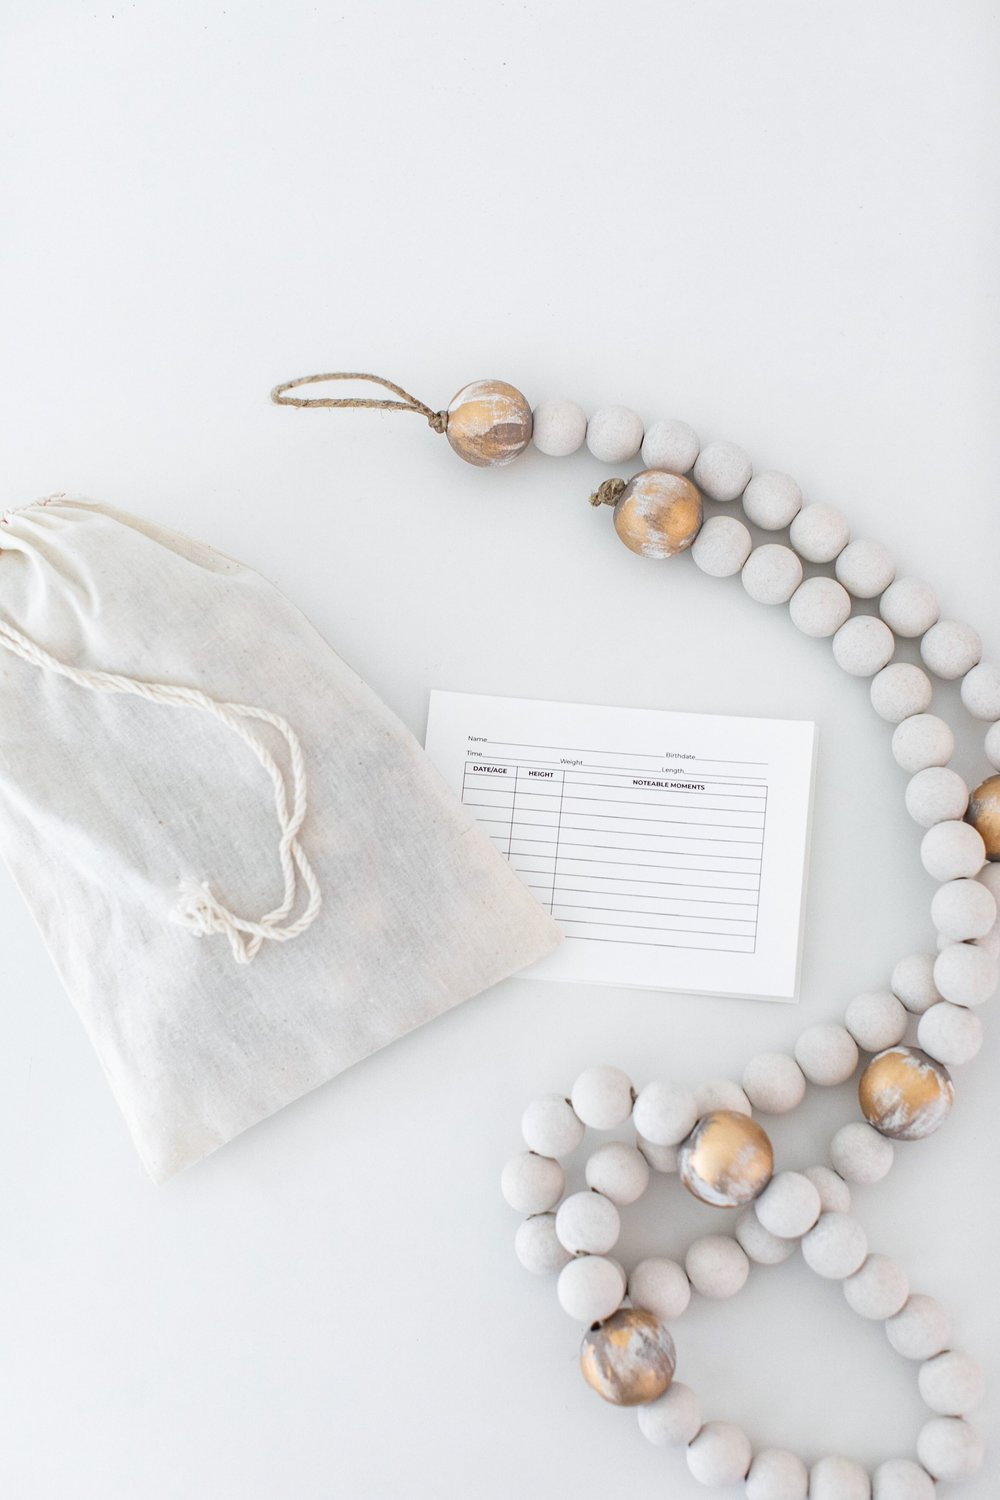 wooden bead growth chart/ heirloomed